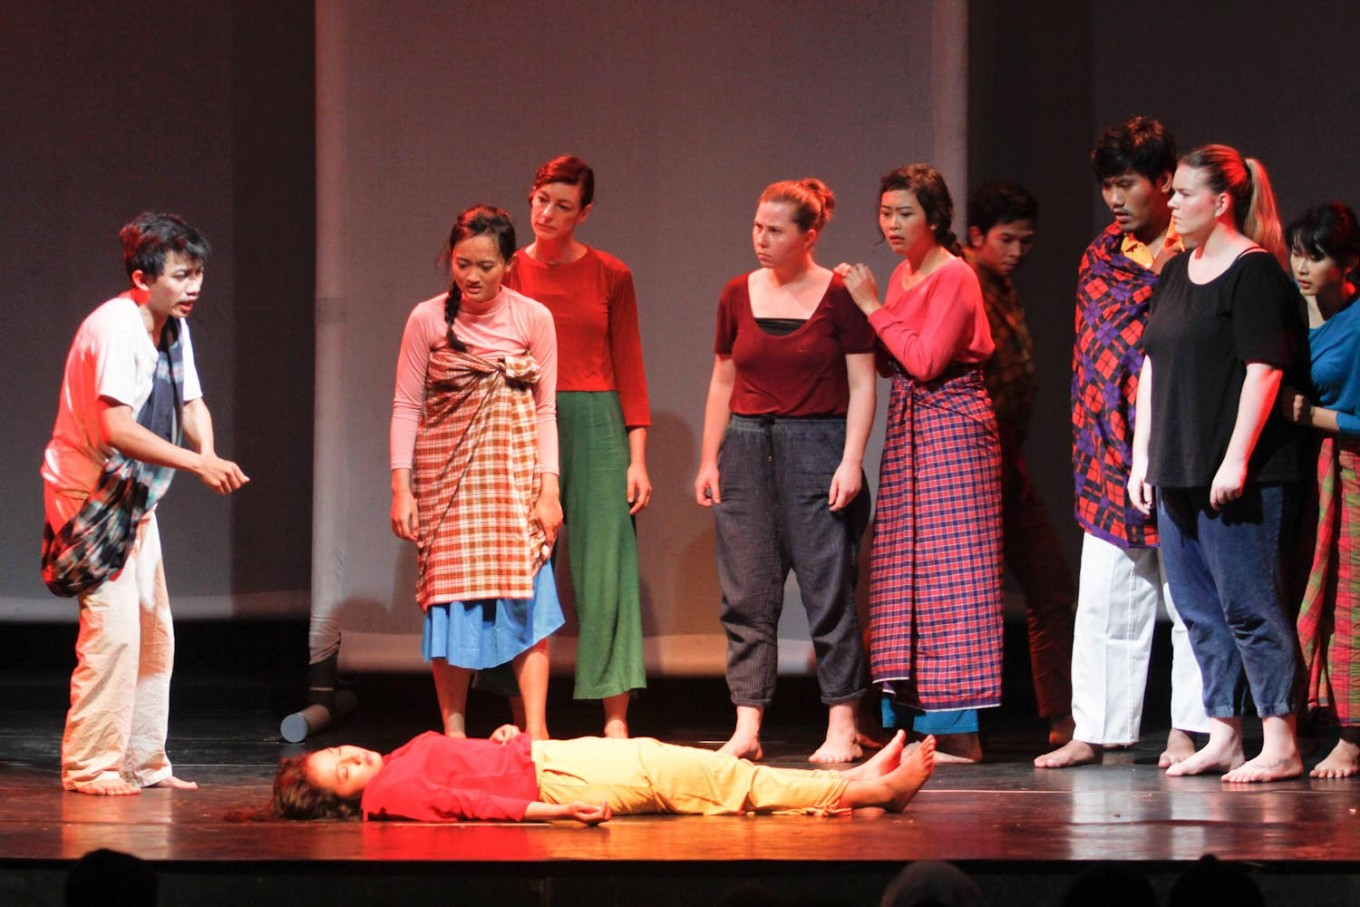 The theater performance portrays the Jamarun folklore originated from Cianjur, West Java.